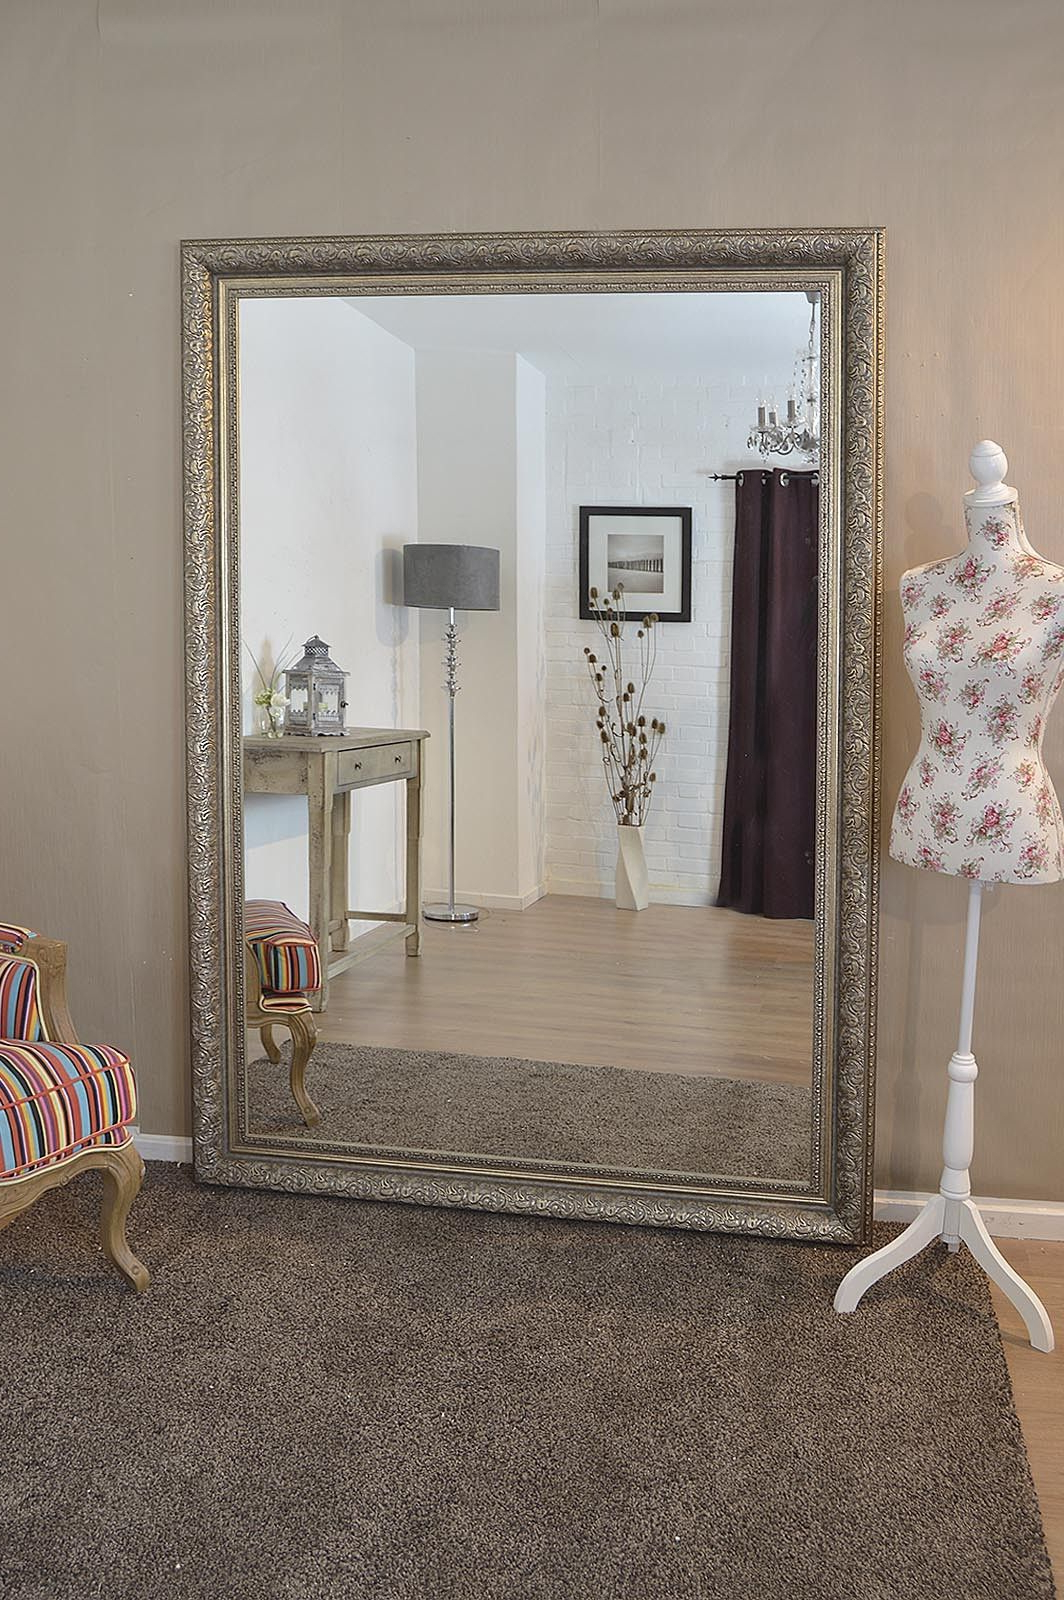 Giant Wall Mirrors With Fashionable Large Silver Ornate Decorative Big Wall Mirror 7ft X 5ft (208cm X (View 5 of 20)